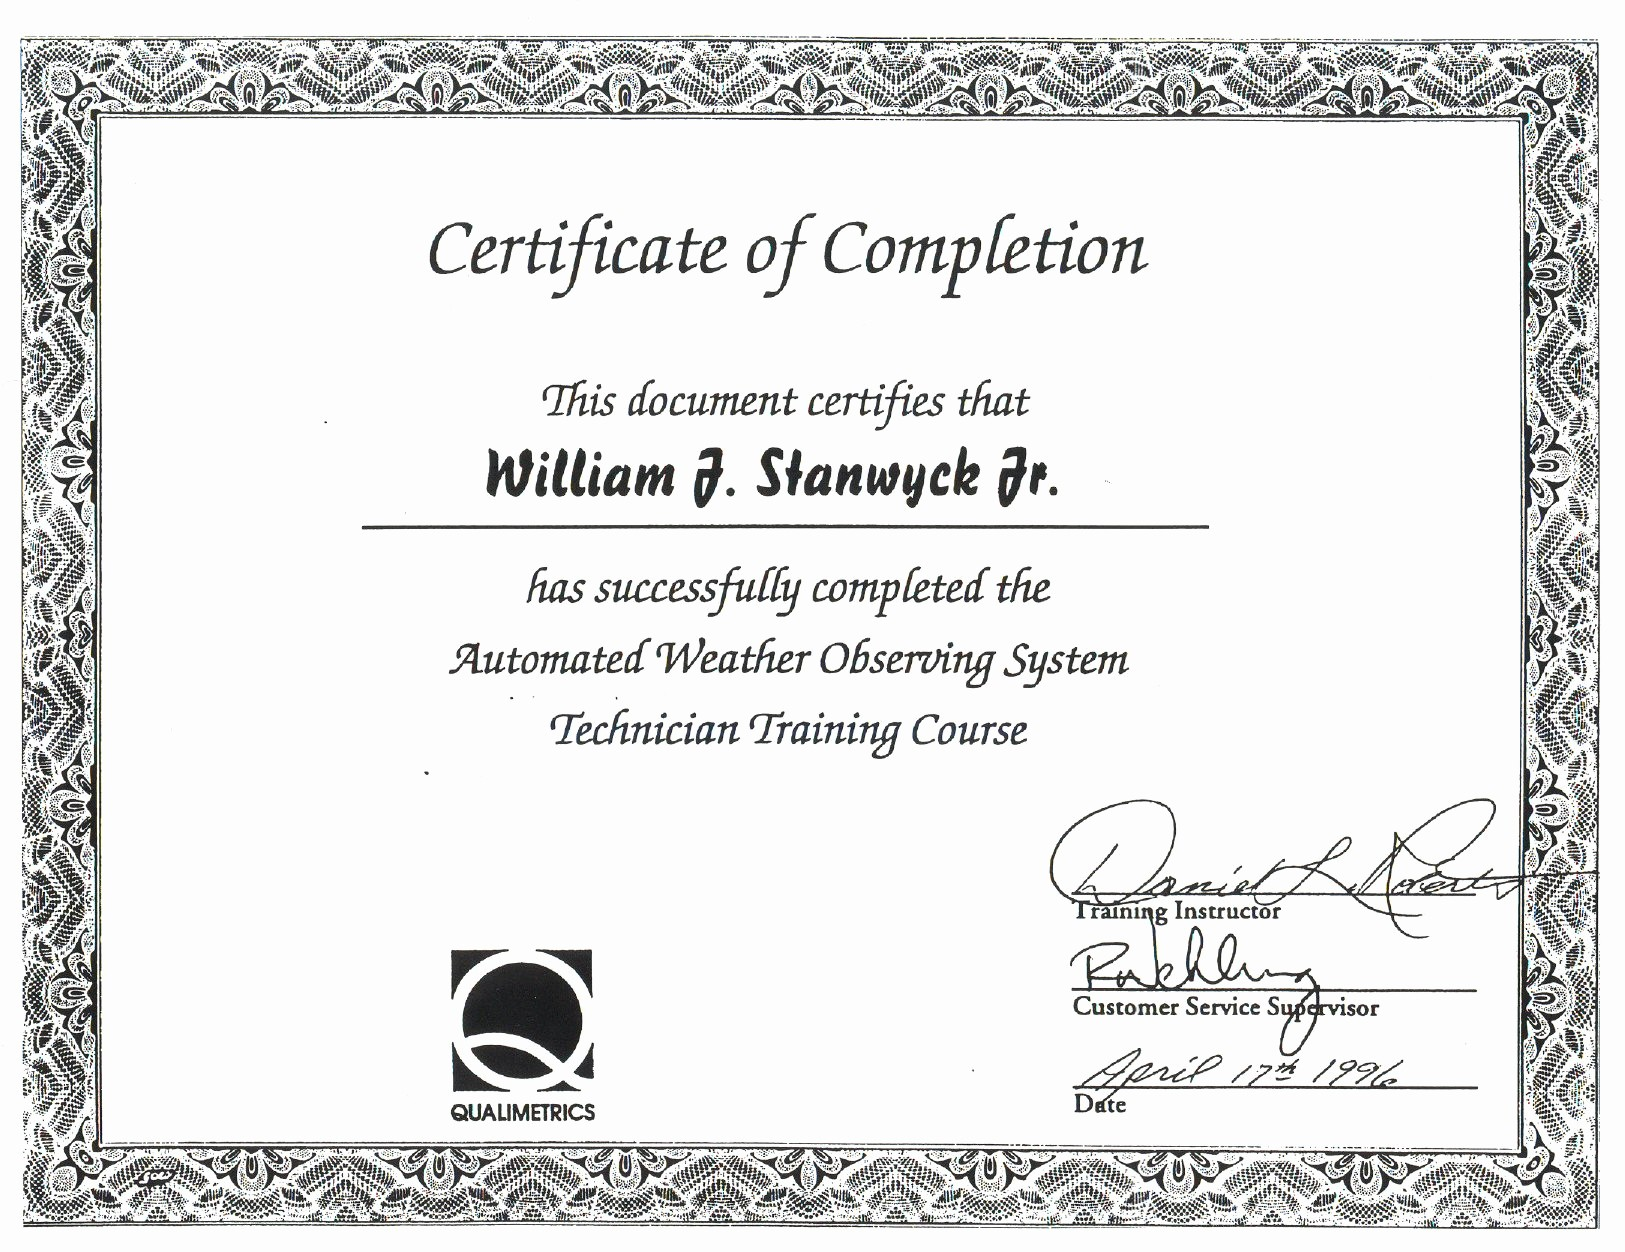 Certificates Of Completion Template Word Elegant 13 Certificate Of Pletion Templates Excel Pdf formats